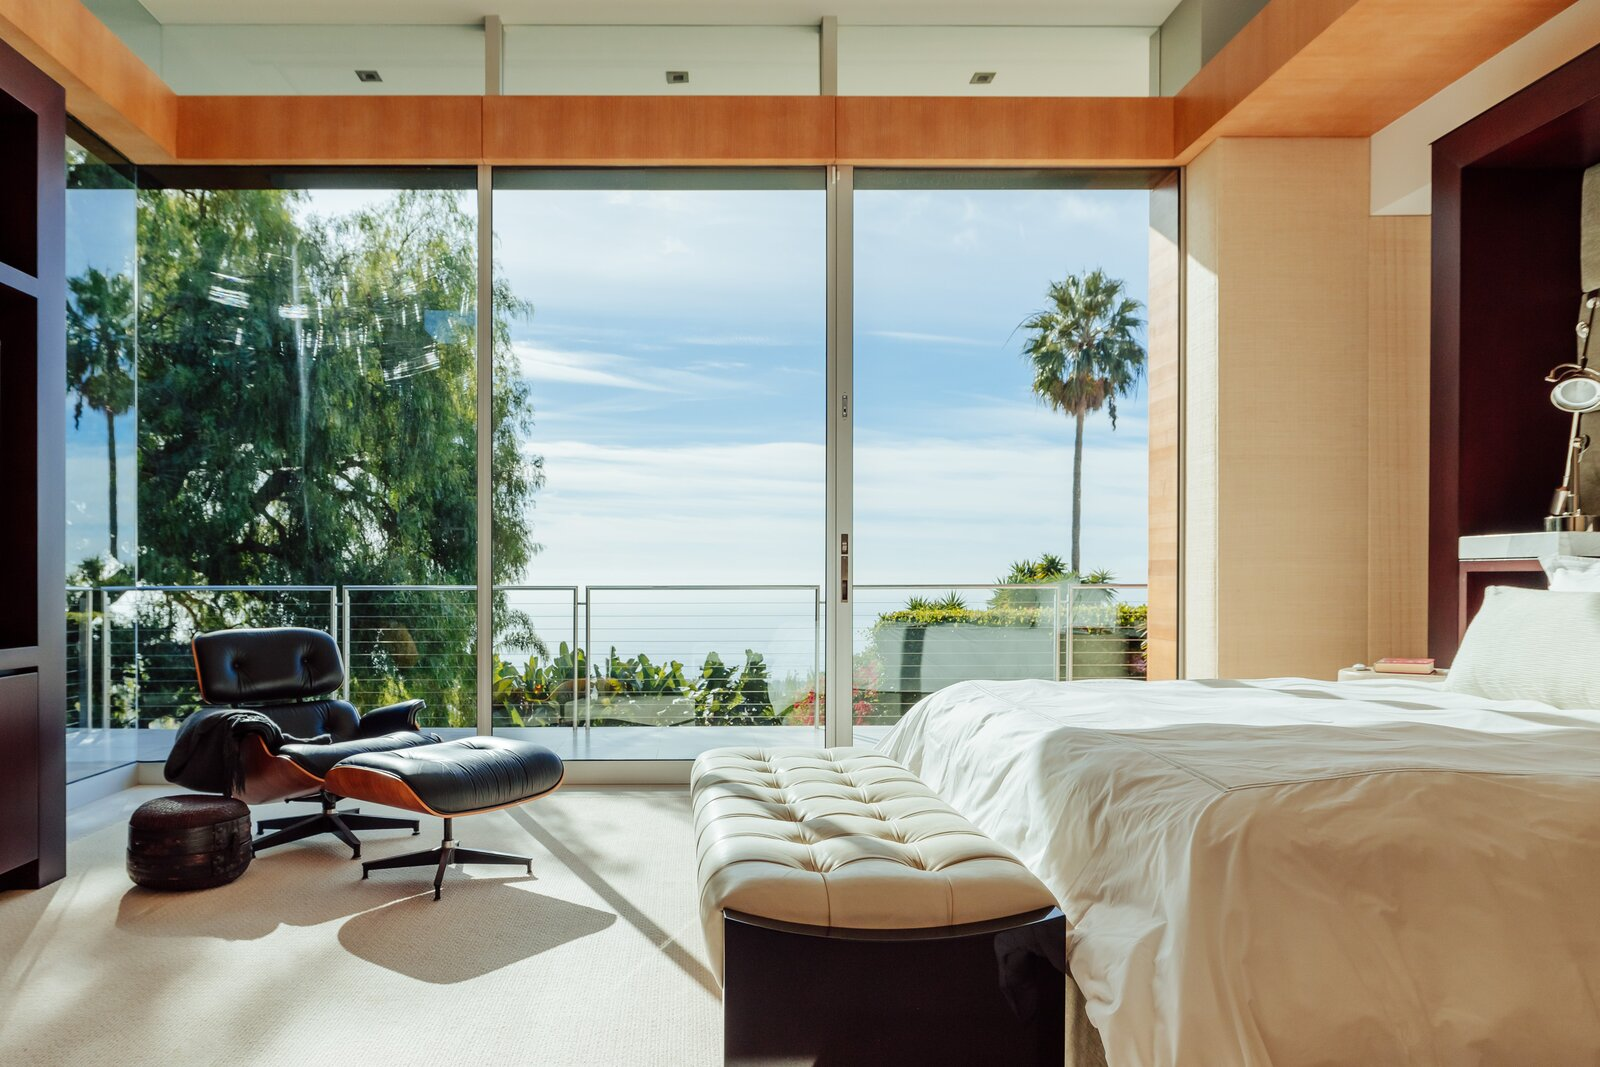 Bedroom of Malibu Crest by Studio Bracket Architects